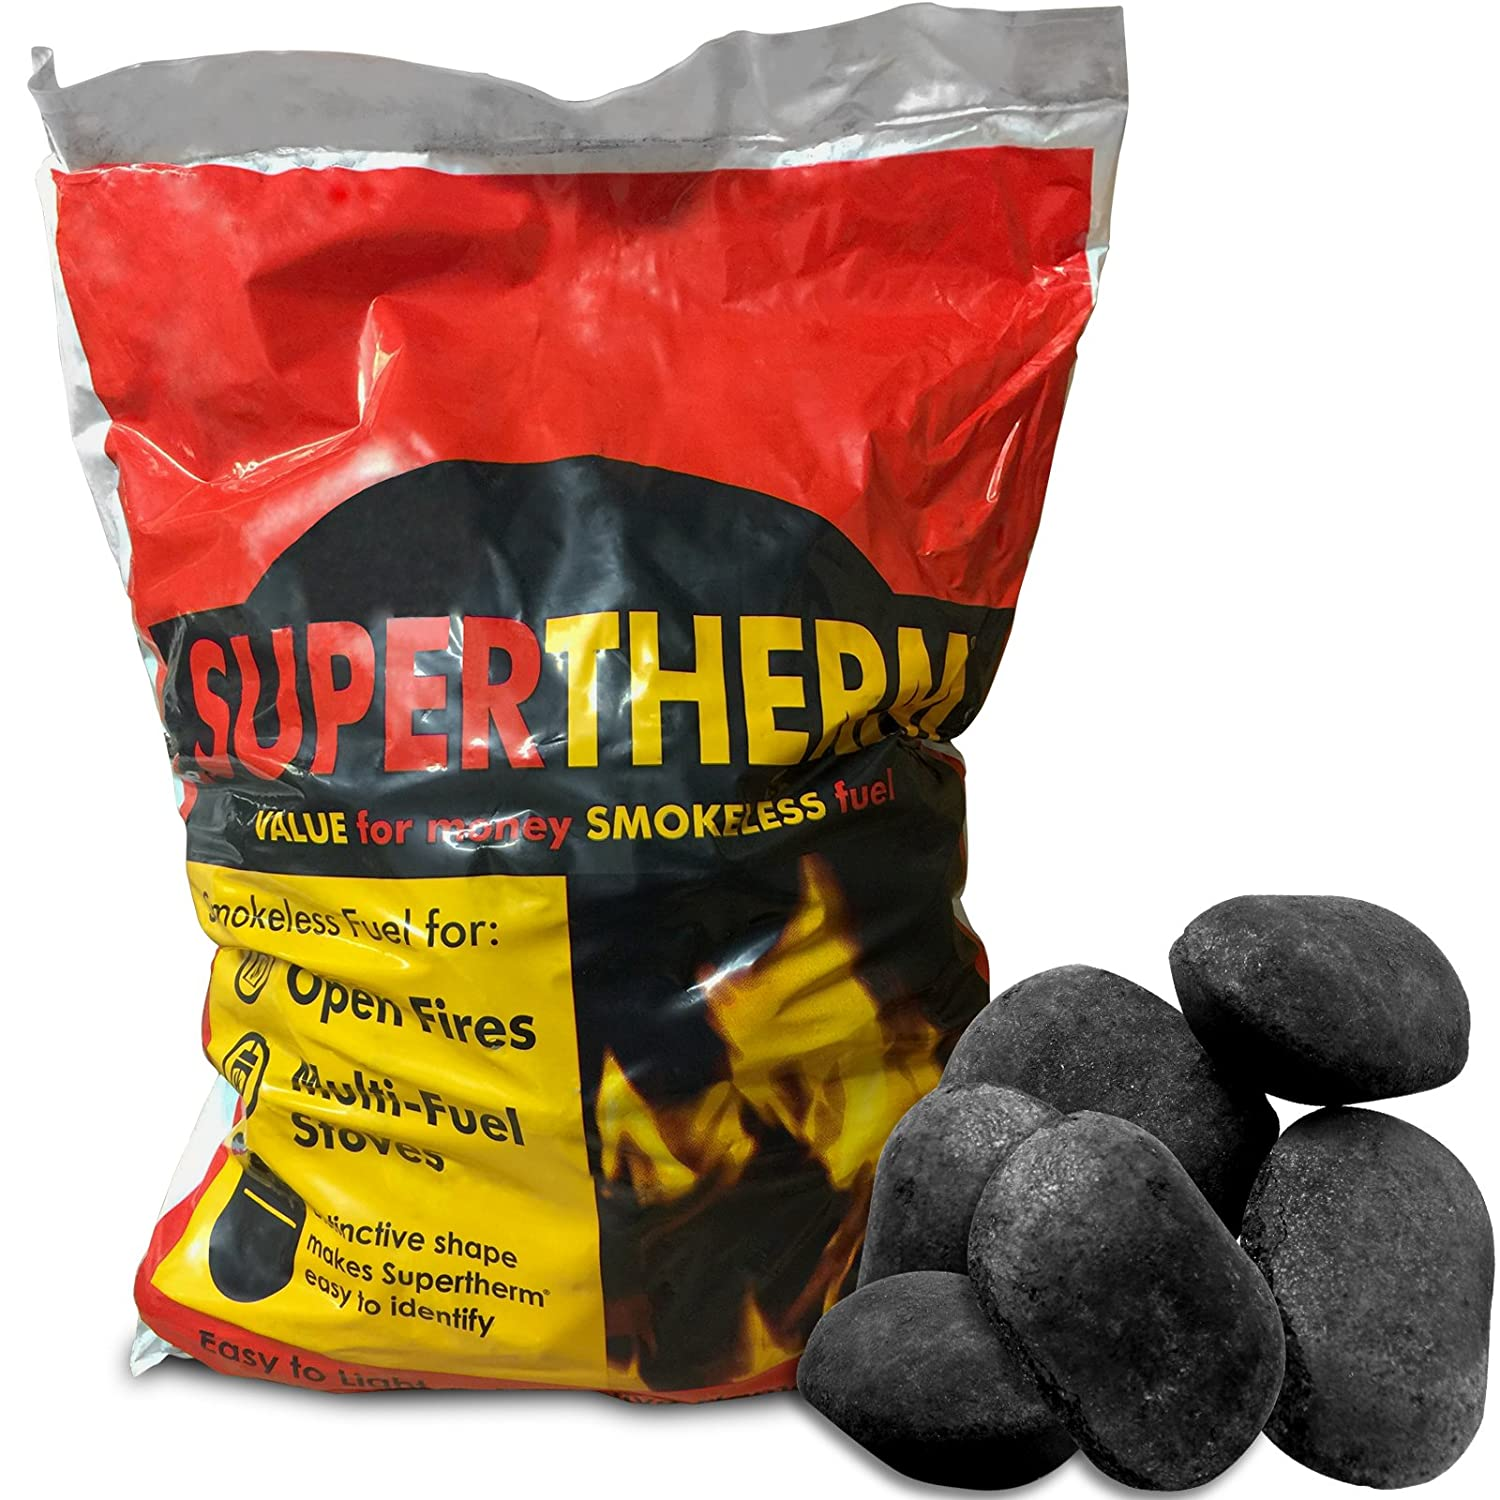 100kg of Supertherm Extra Hot Smokeless Coal Fire Fuel for Open Fires and Multi Fuel Log Burners & Tigerbox Safety Matches. Shop4accessories